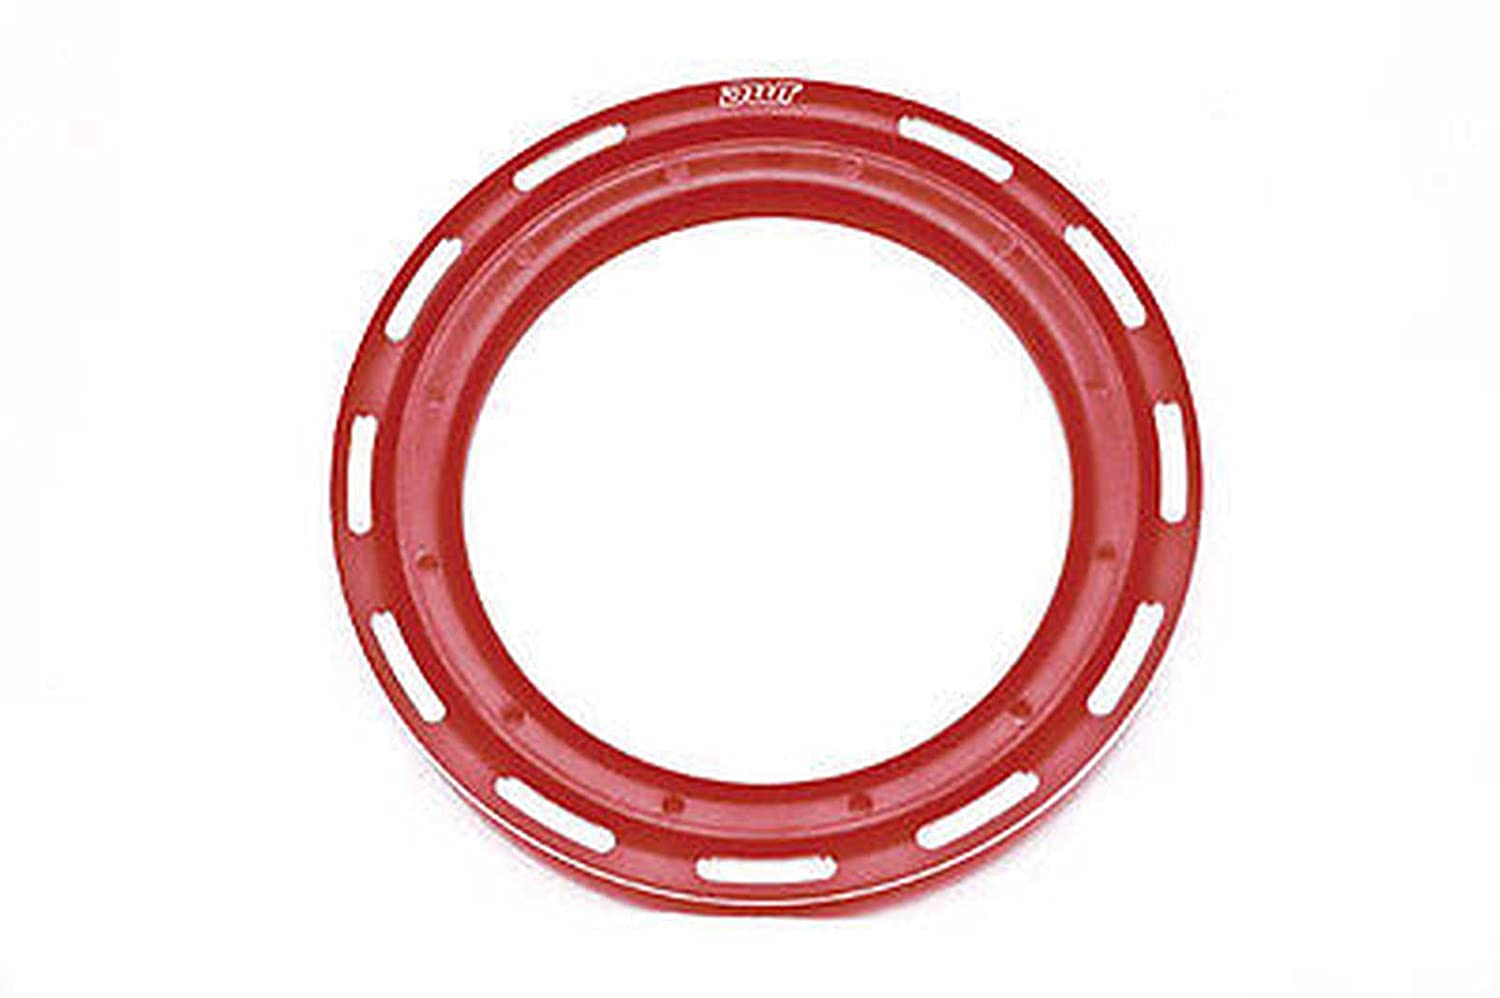 Douglas Technologies Beadlock Rings .190 - 8in. - Red Powder Coat DOUGLAS WHEEL tr-557206